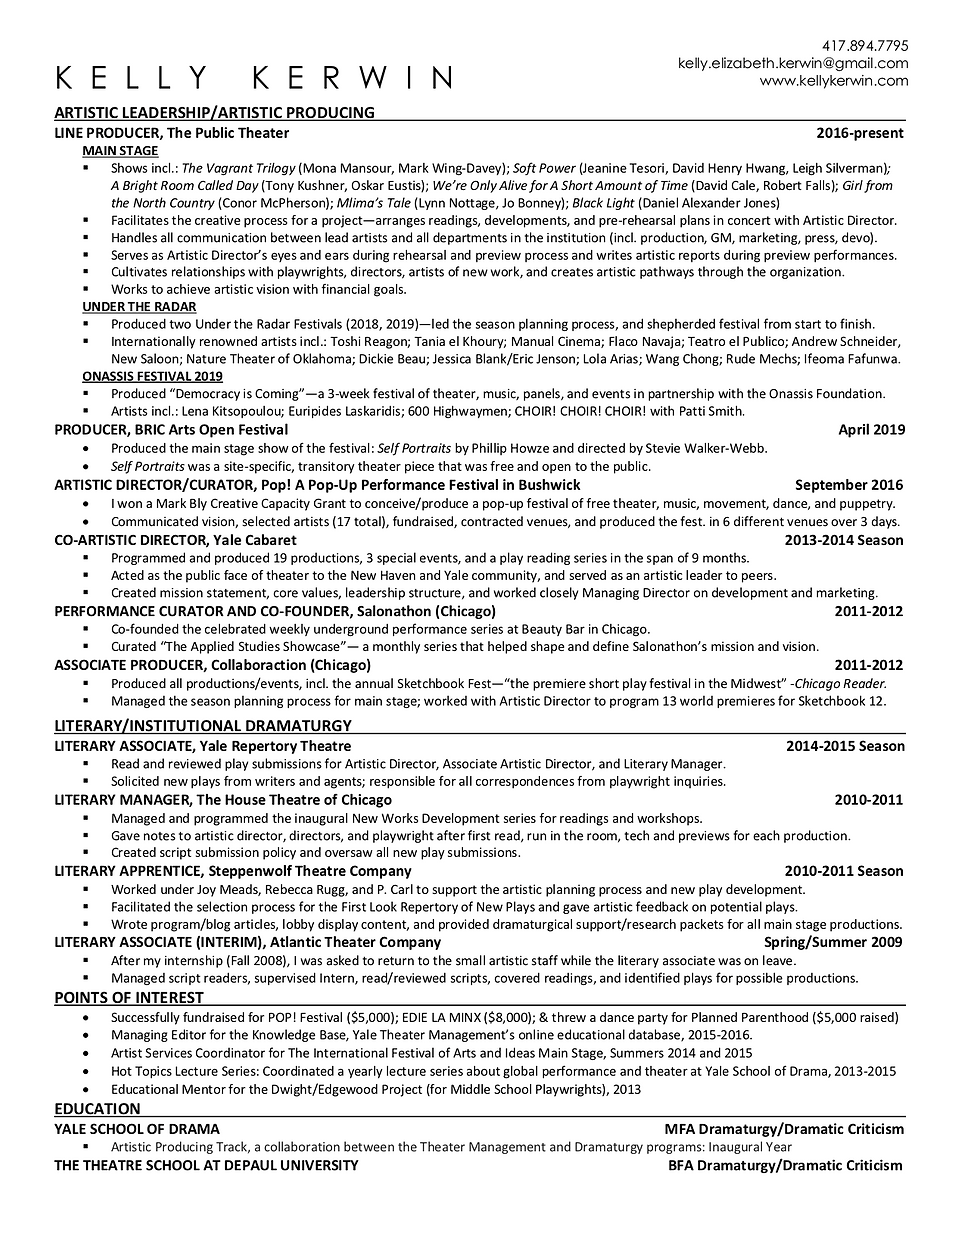 Kelly Kerwin Admin Resume May 2020.png